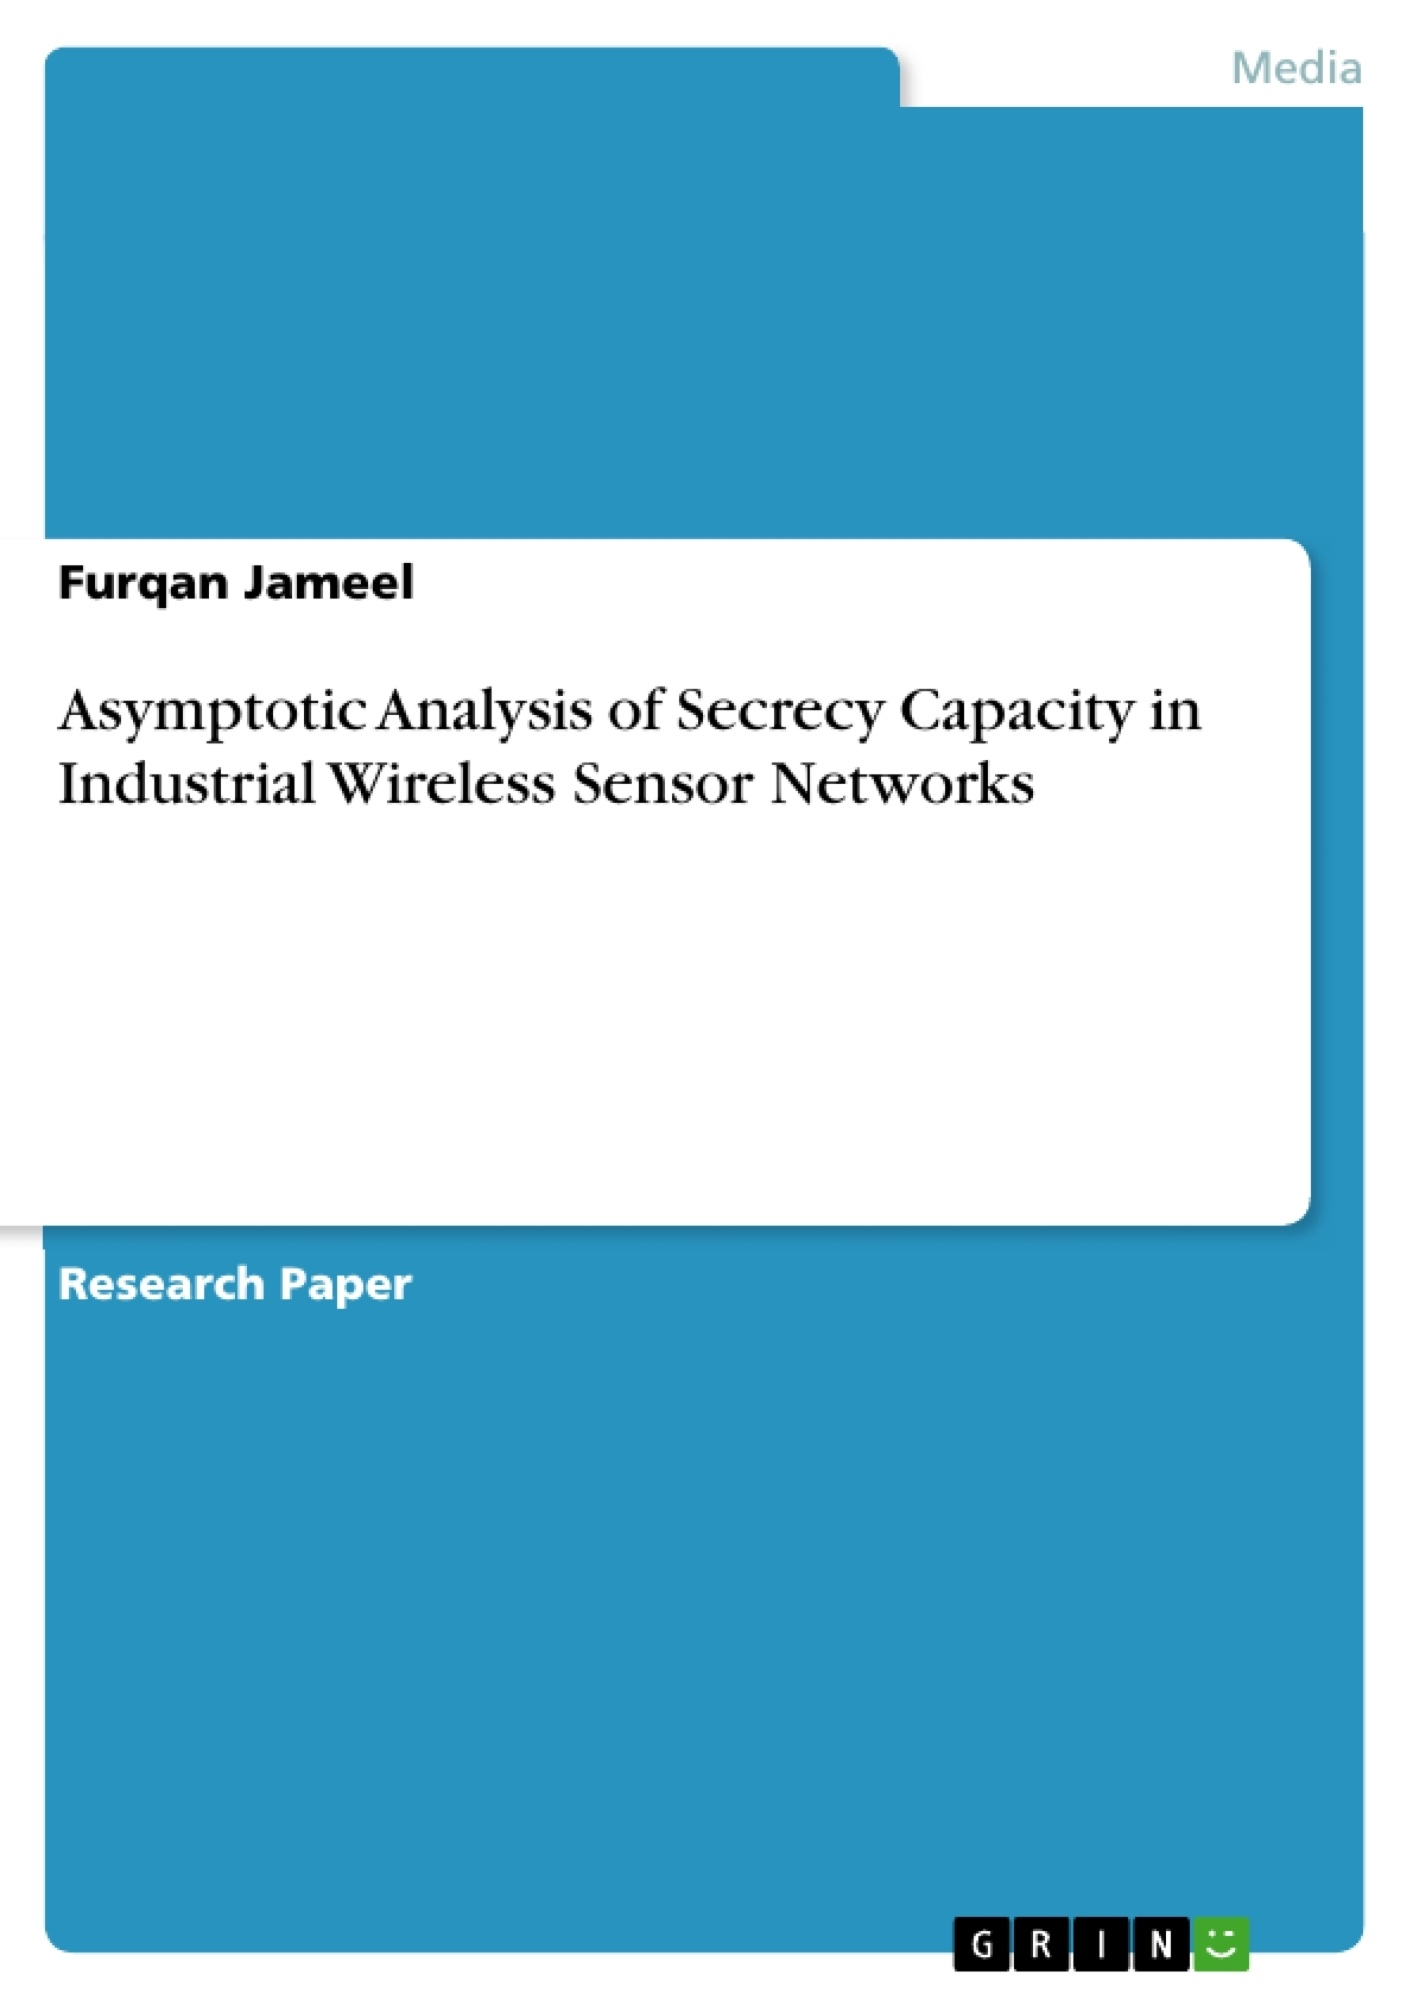 Title: Asymptotic Analysis of Secrecy Capacity in Industrial Wireless Sensor Networks